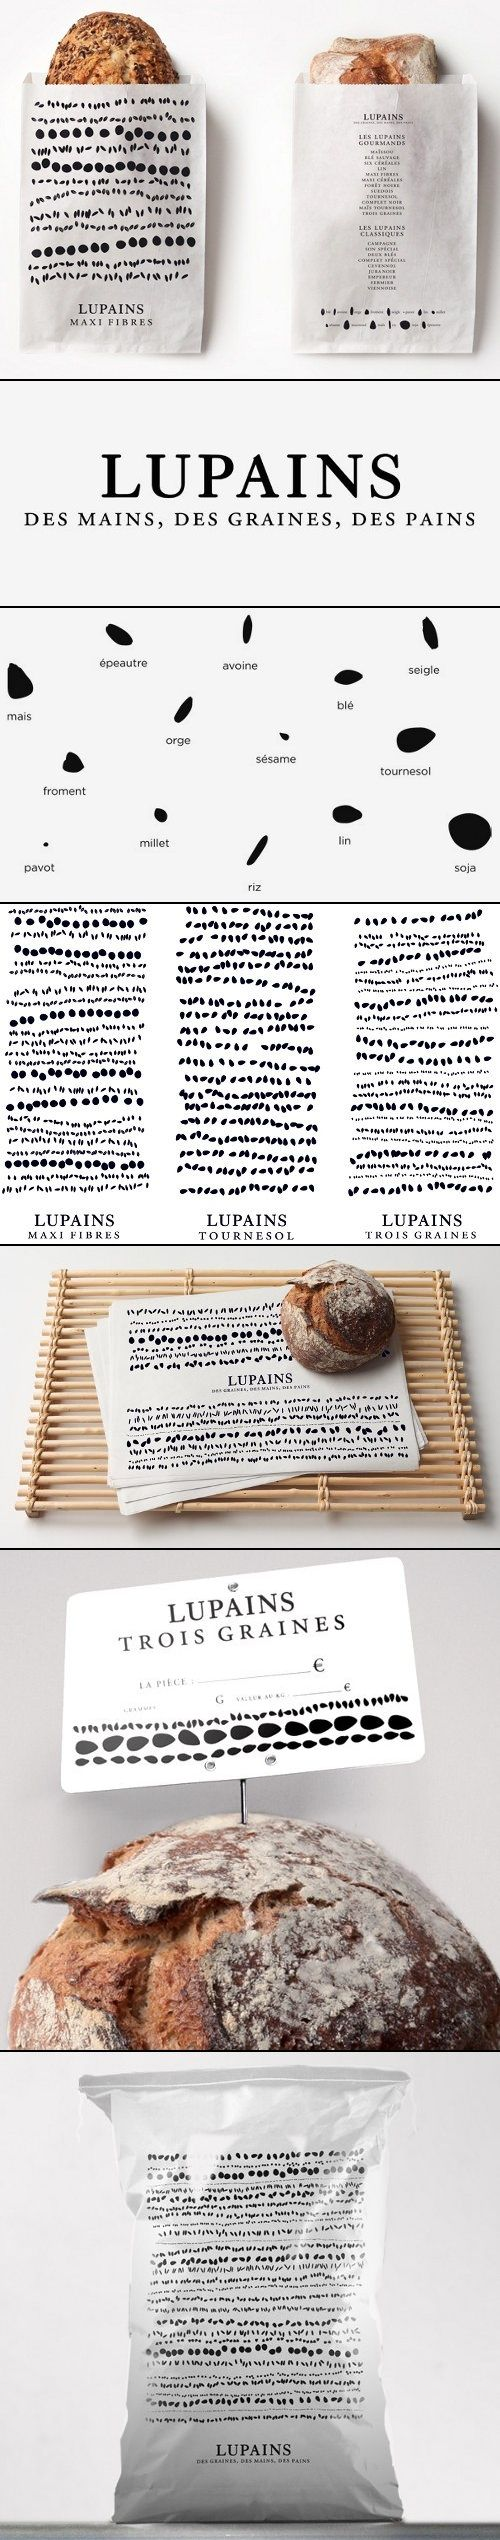 Lupains by Les Bon Faiseurs and  http://www.thedieline.com/blog/2013/10/28/lupains.html